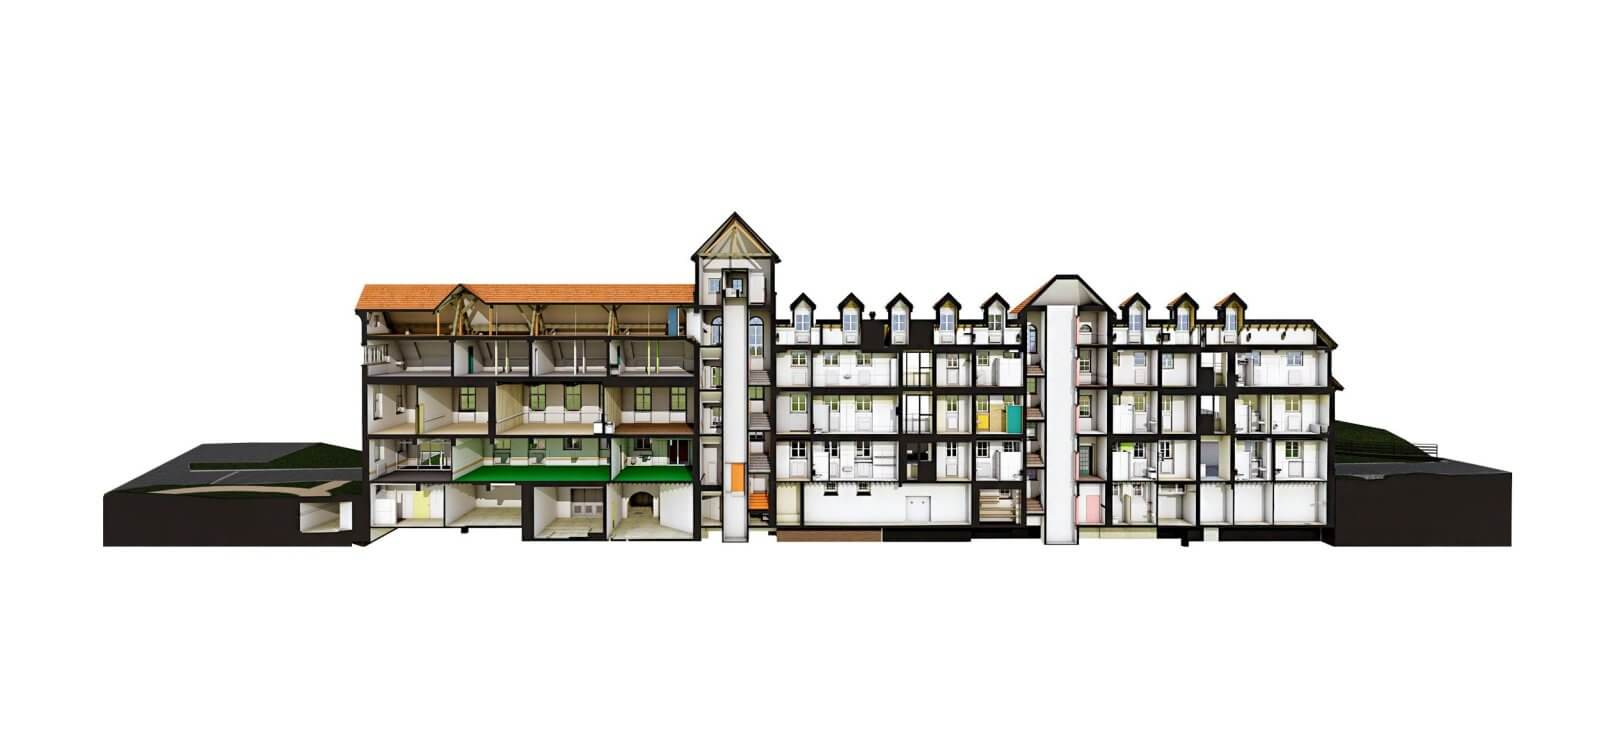 Wagerenhof-Uster-pointcloud-to-Archicad-3D-section